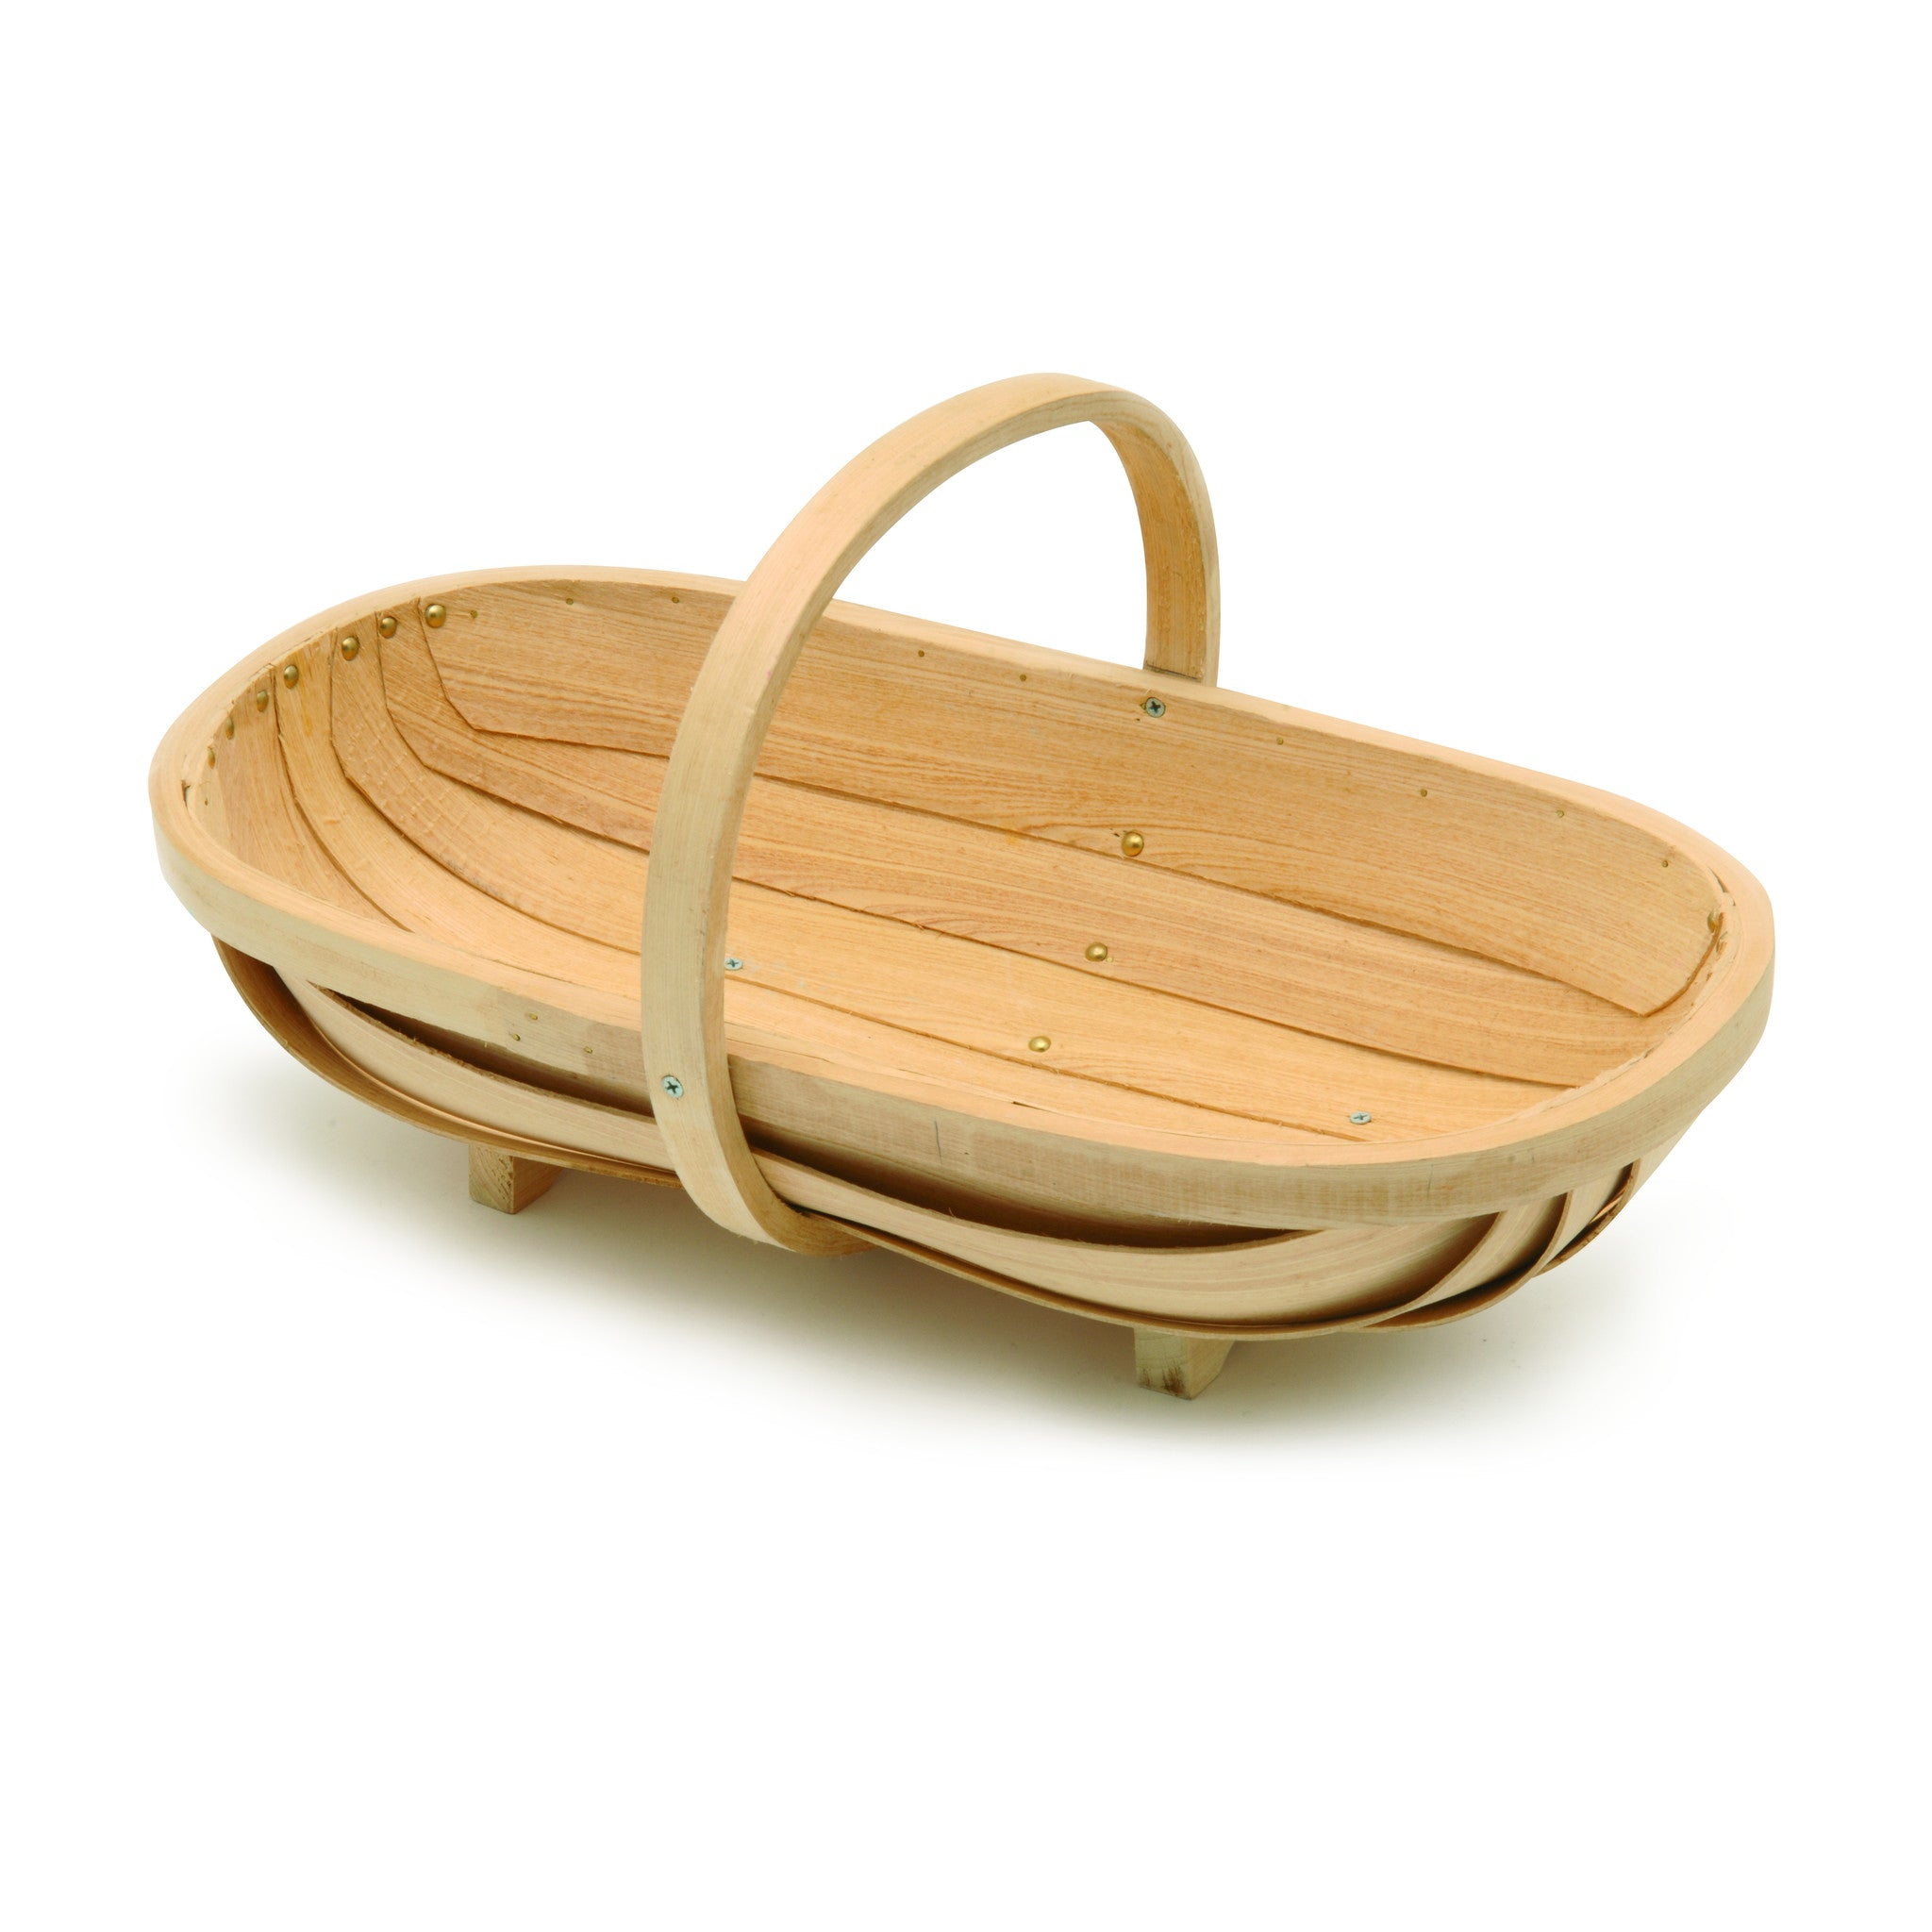 Traditional Wooden Trug - Medium - The Potting Shed Garden Tools